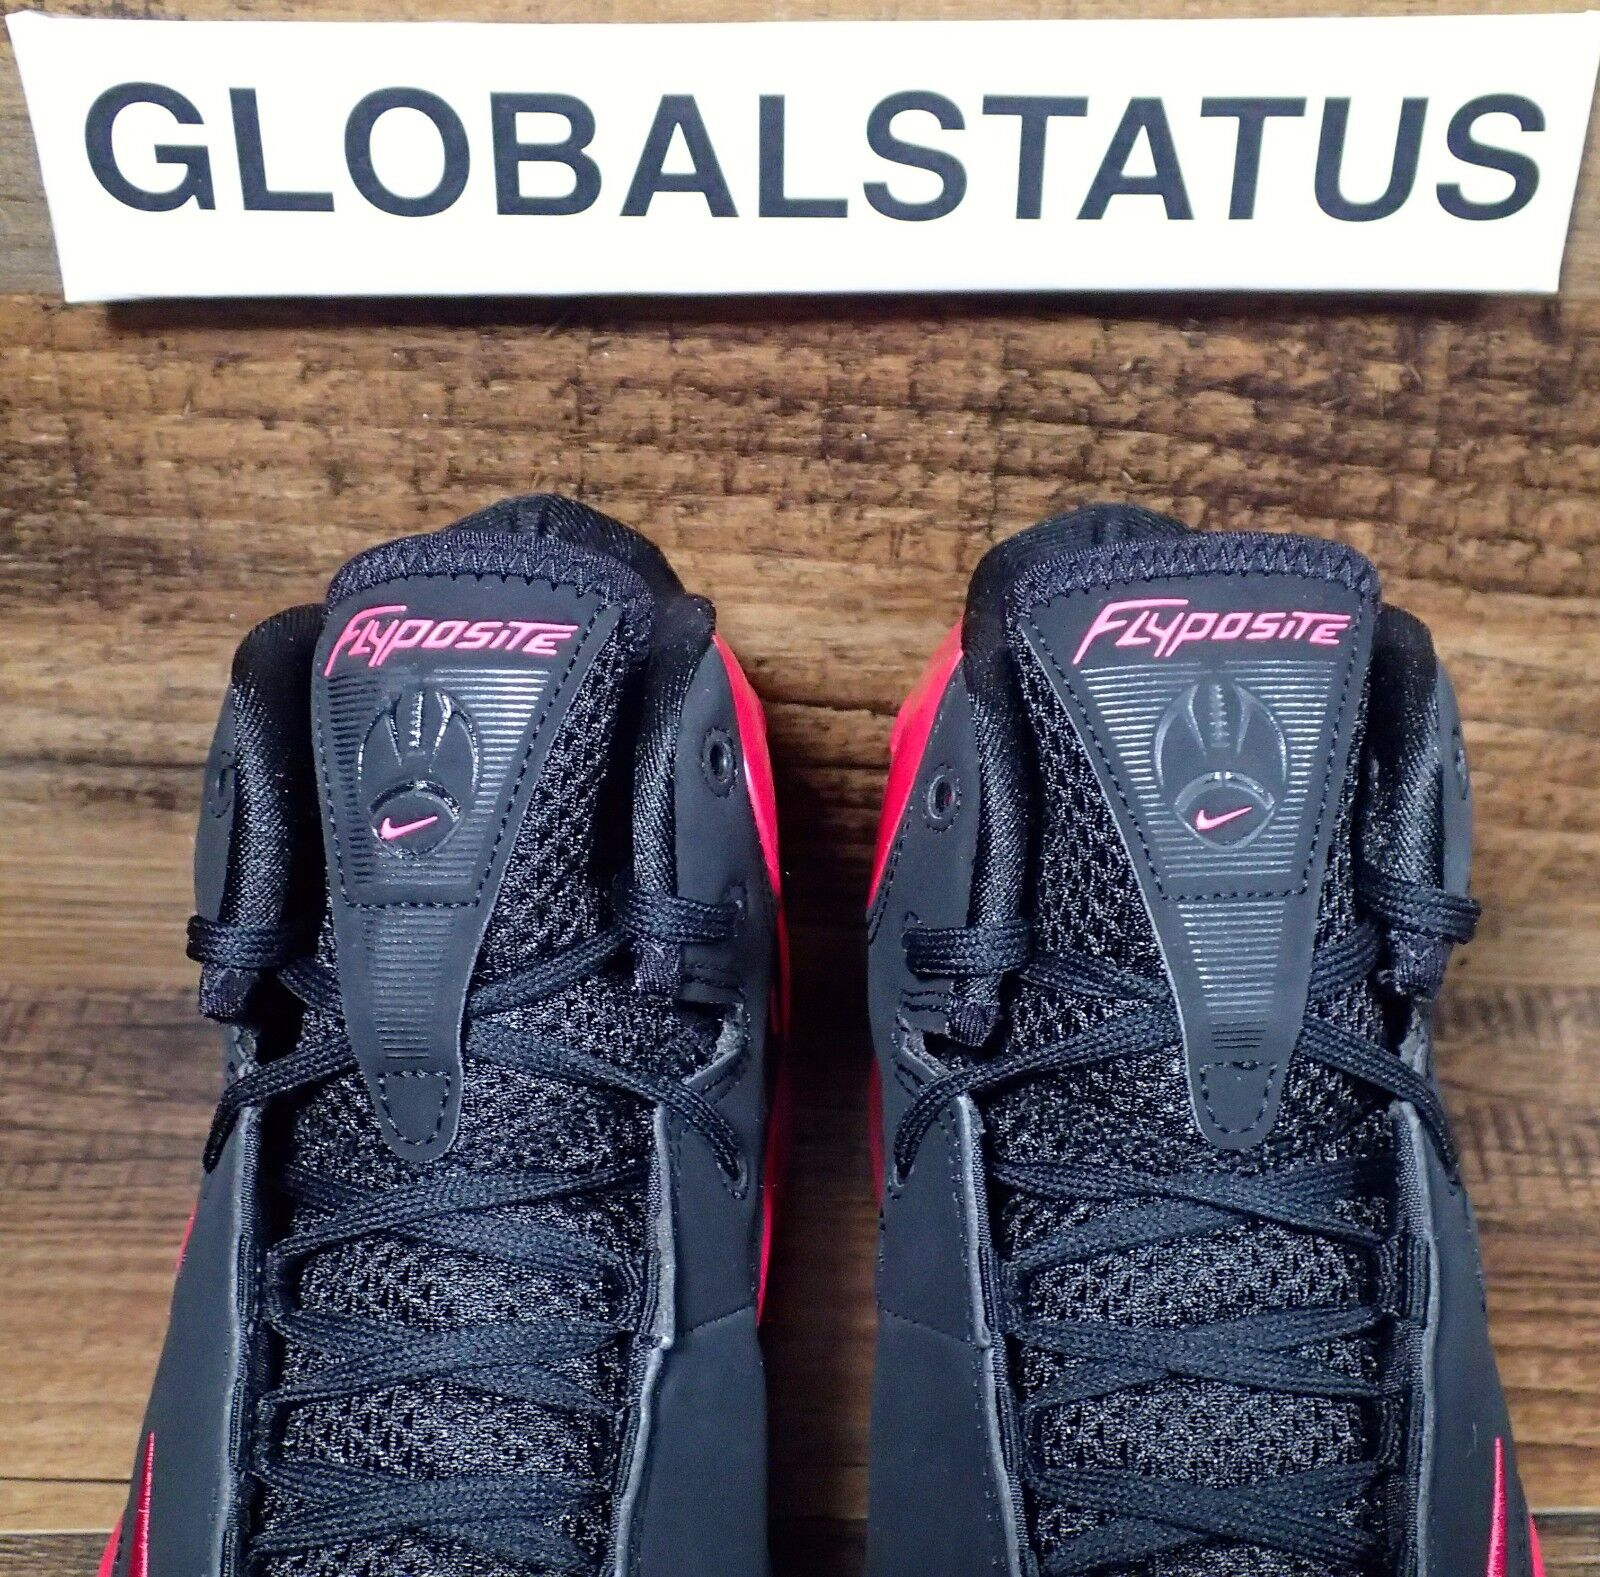 finest selection 35683 58e2a ... 2012 NIKE AIR MAX FLYPOSITE BREAST CANCER BLACK VIVID PINK PINK PINK  SHOES 536850 600 SZ ...